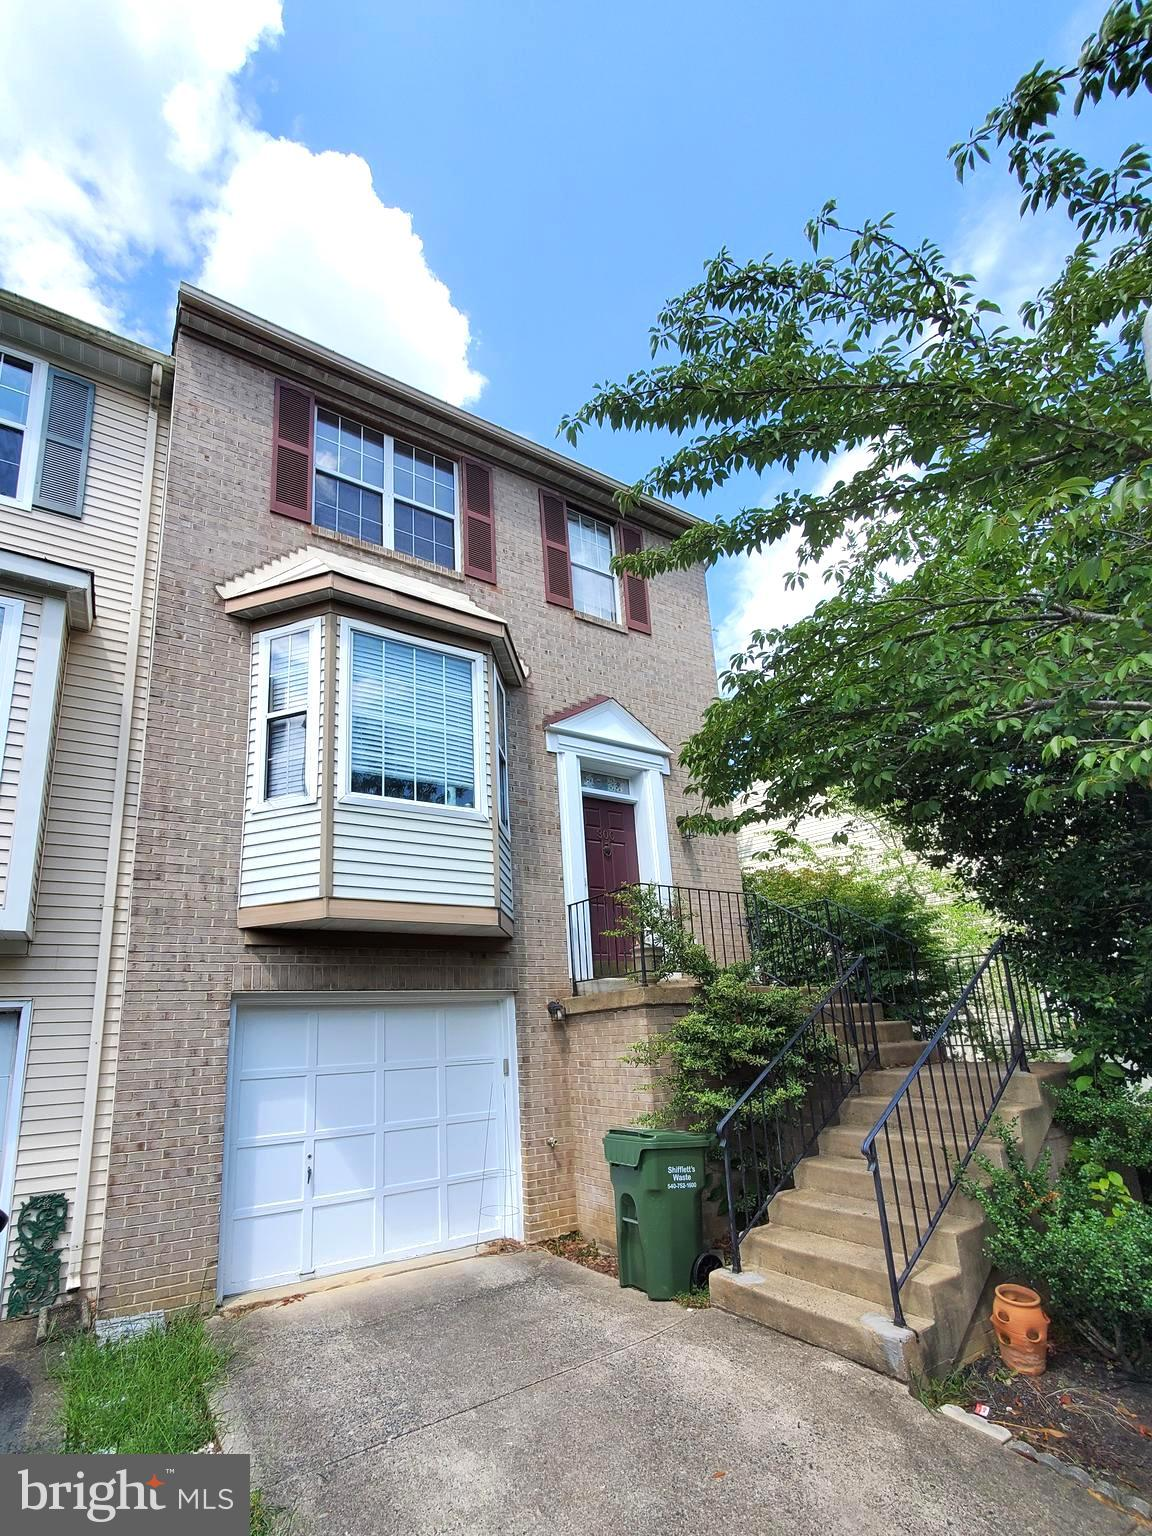 Welcome home to this beautiful 3 story end unit town home in Stafford county! This stunning home fea